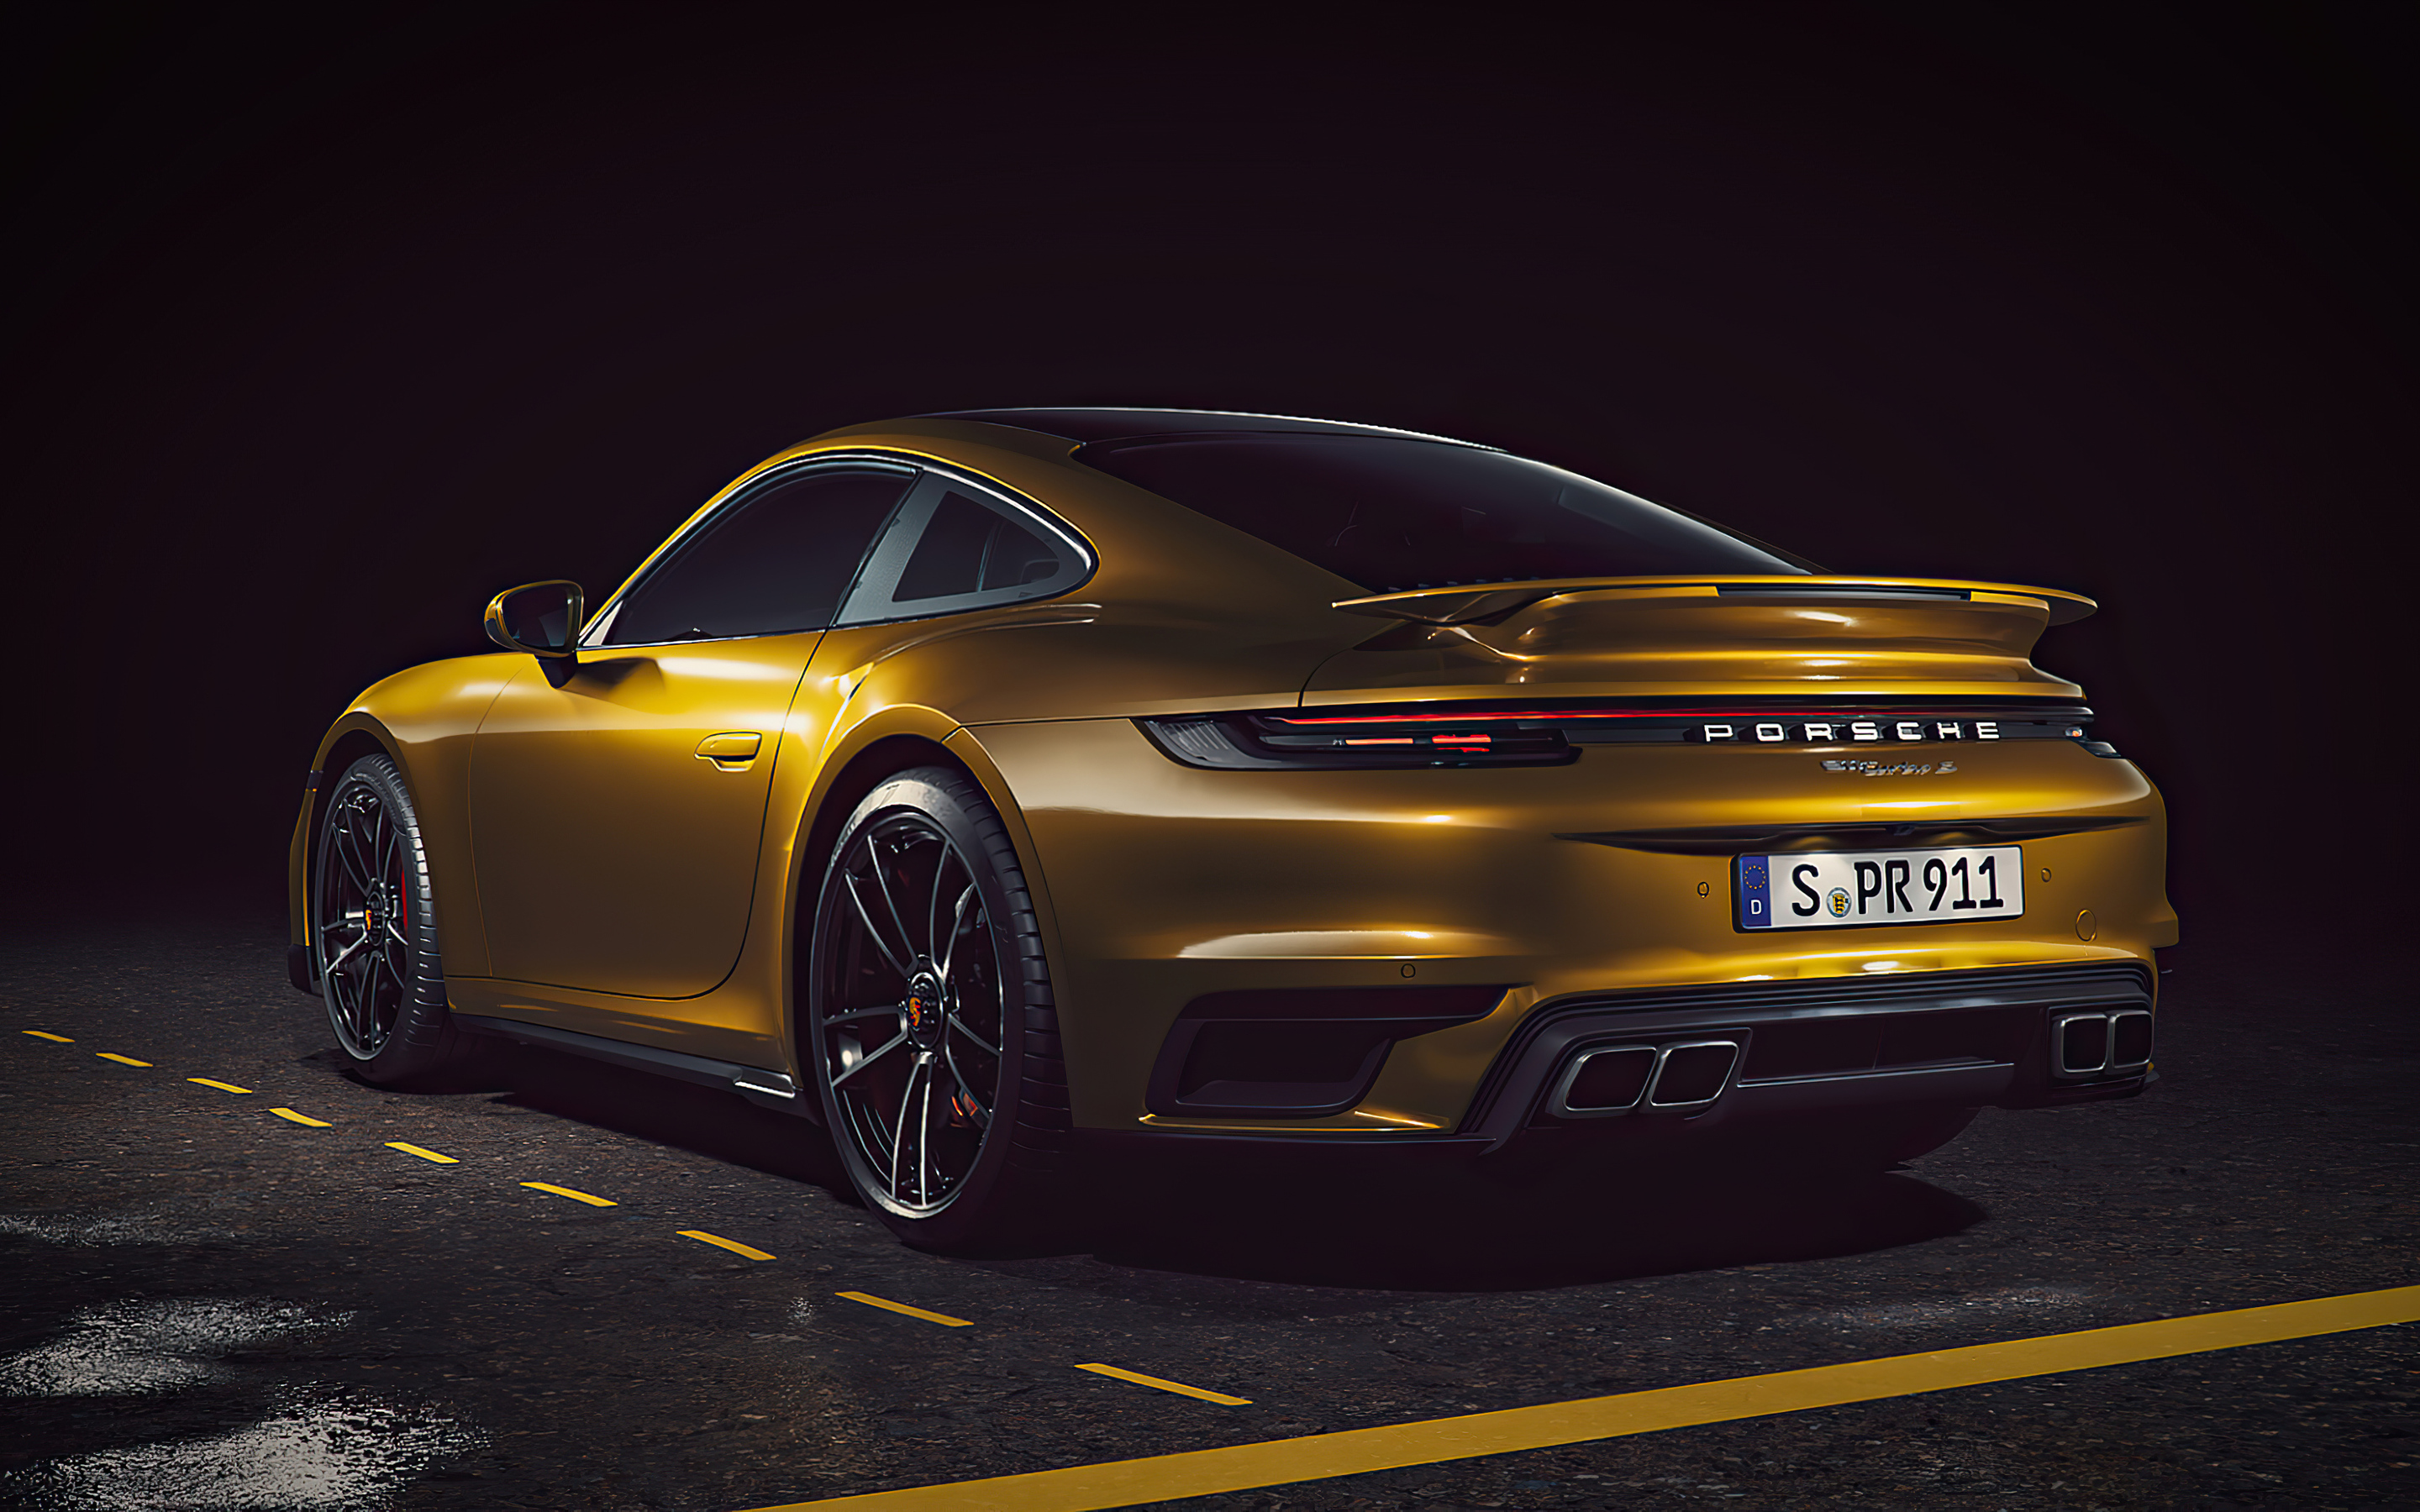 2880x1800 Porsche 911 Turbo S 4k 2020 Macbook Pro Retina Hd 4k Wallpapers Images Backgrounds Photos And Pictures